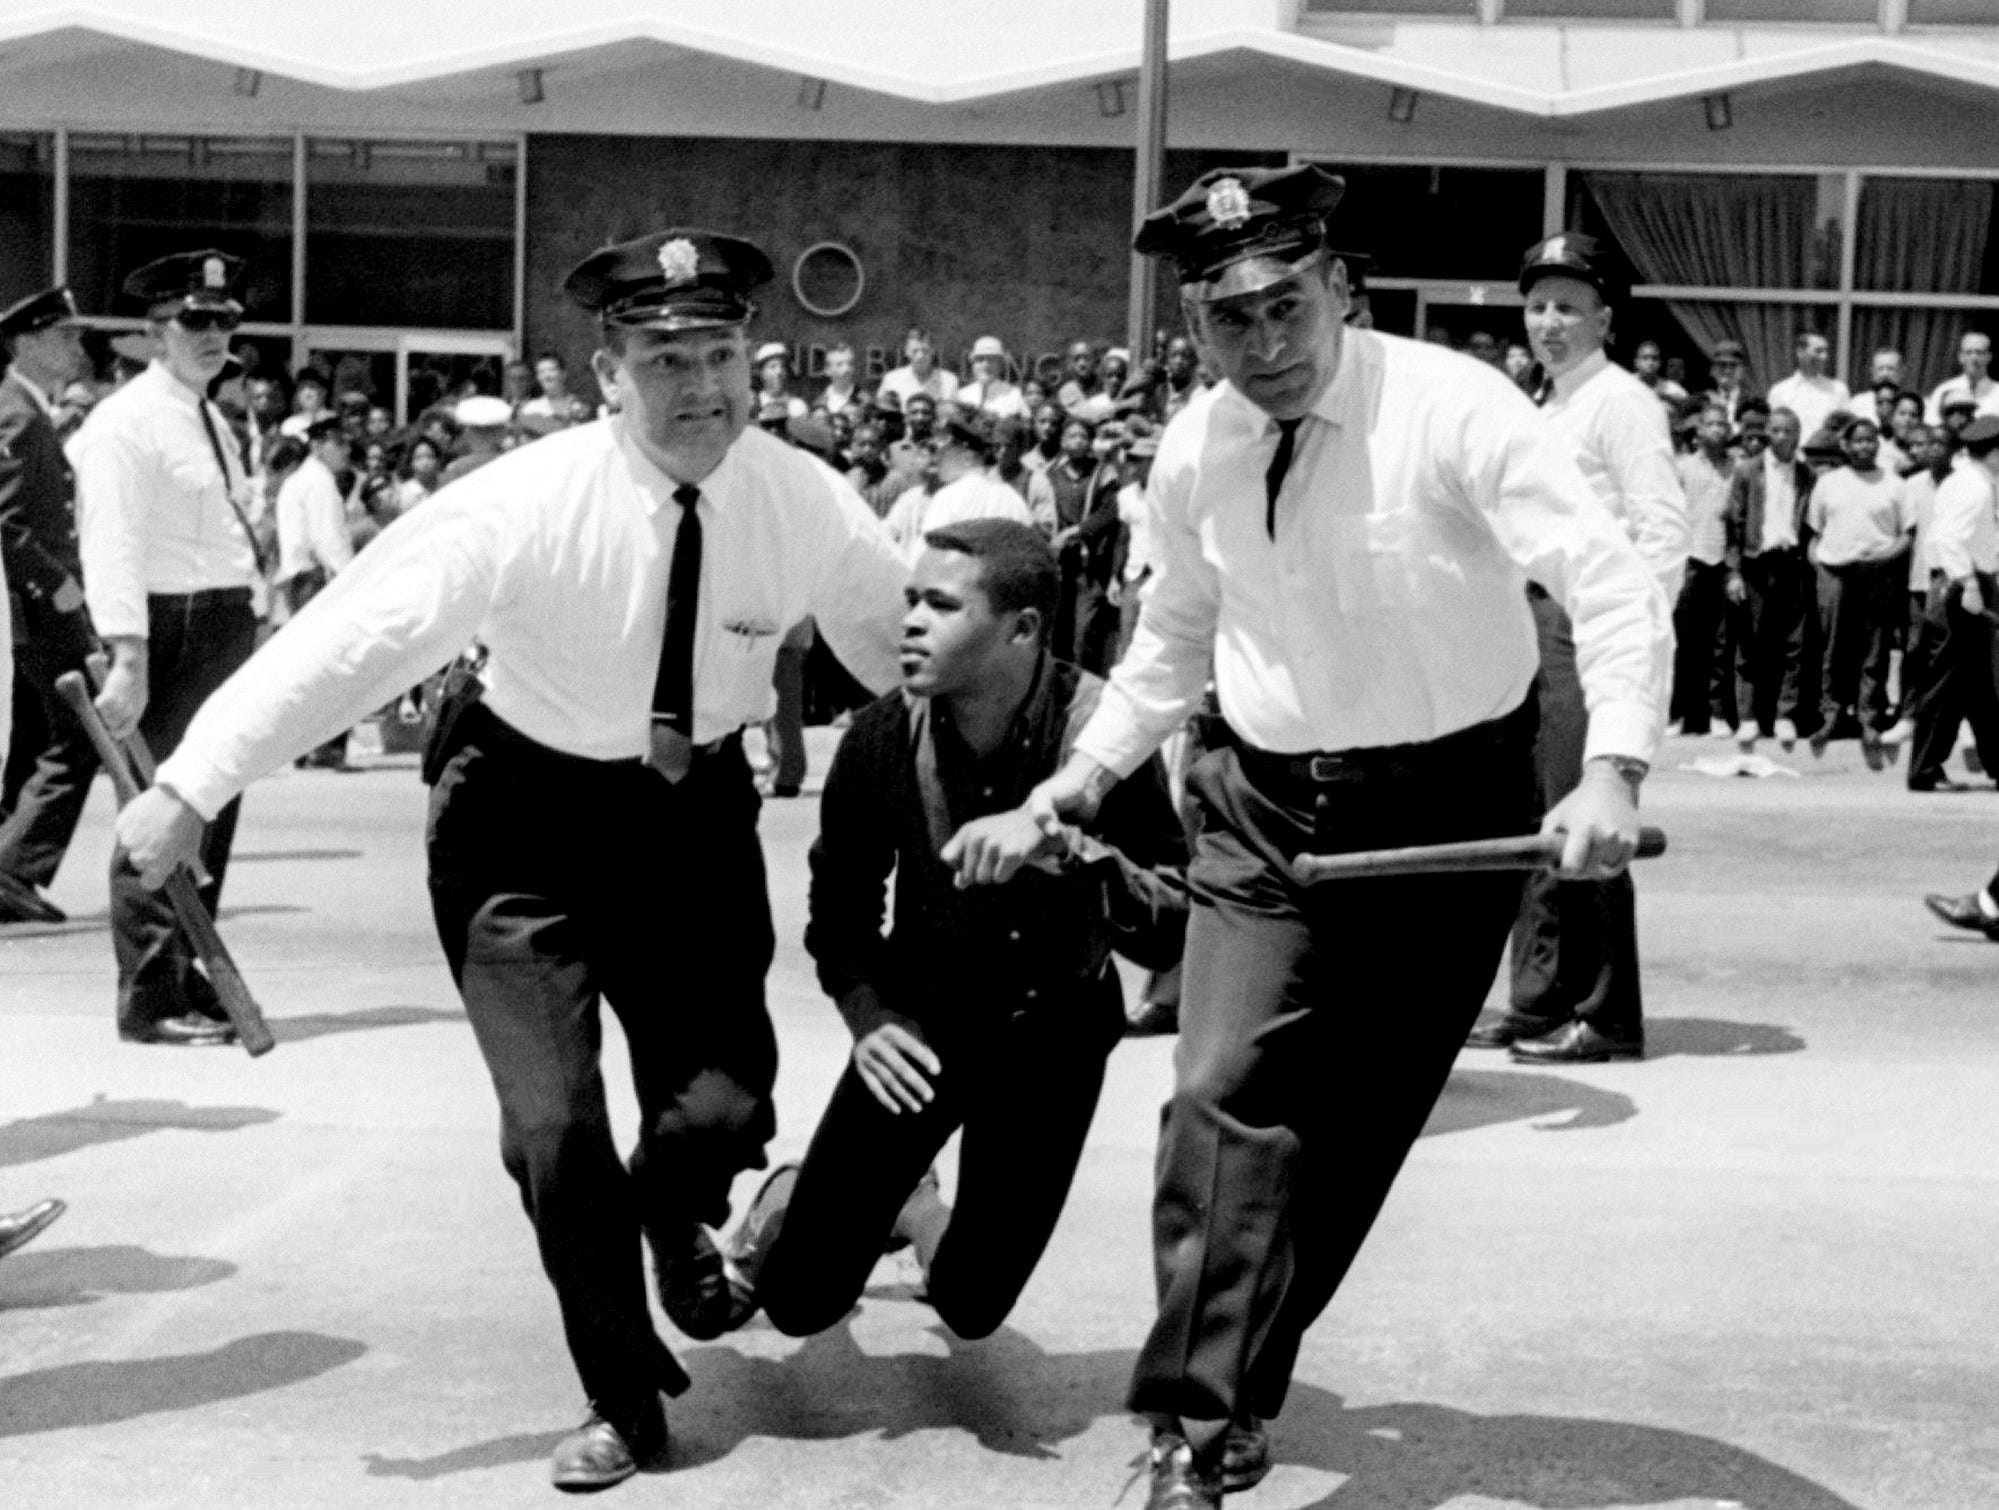 Two Metro police officers drag a civil rights demonstrator out of the middle of West End Avenue toward a police wagon April 29, 1964. He was one of 76 arrested when approximately 300 marchers sat down in the street in front of Morrison's Cafeteria.